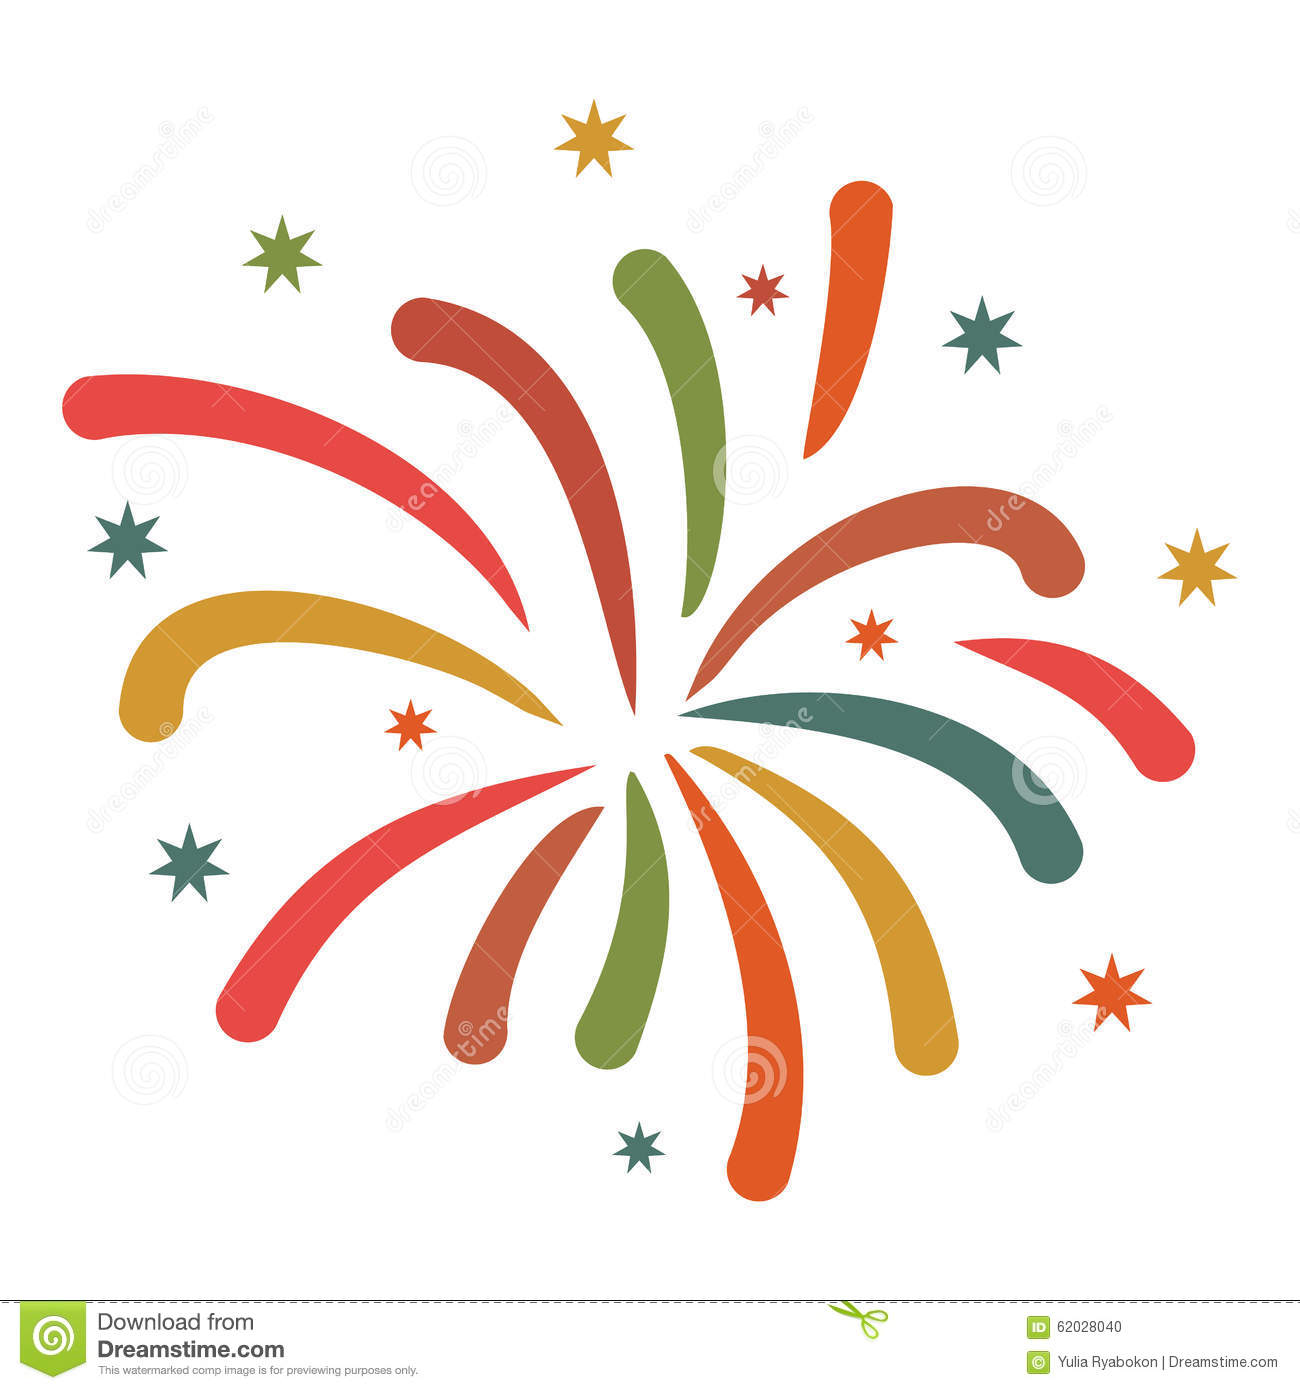 Firework flat icon stock vector. Illustration of creative ...Fireworks Icon Image